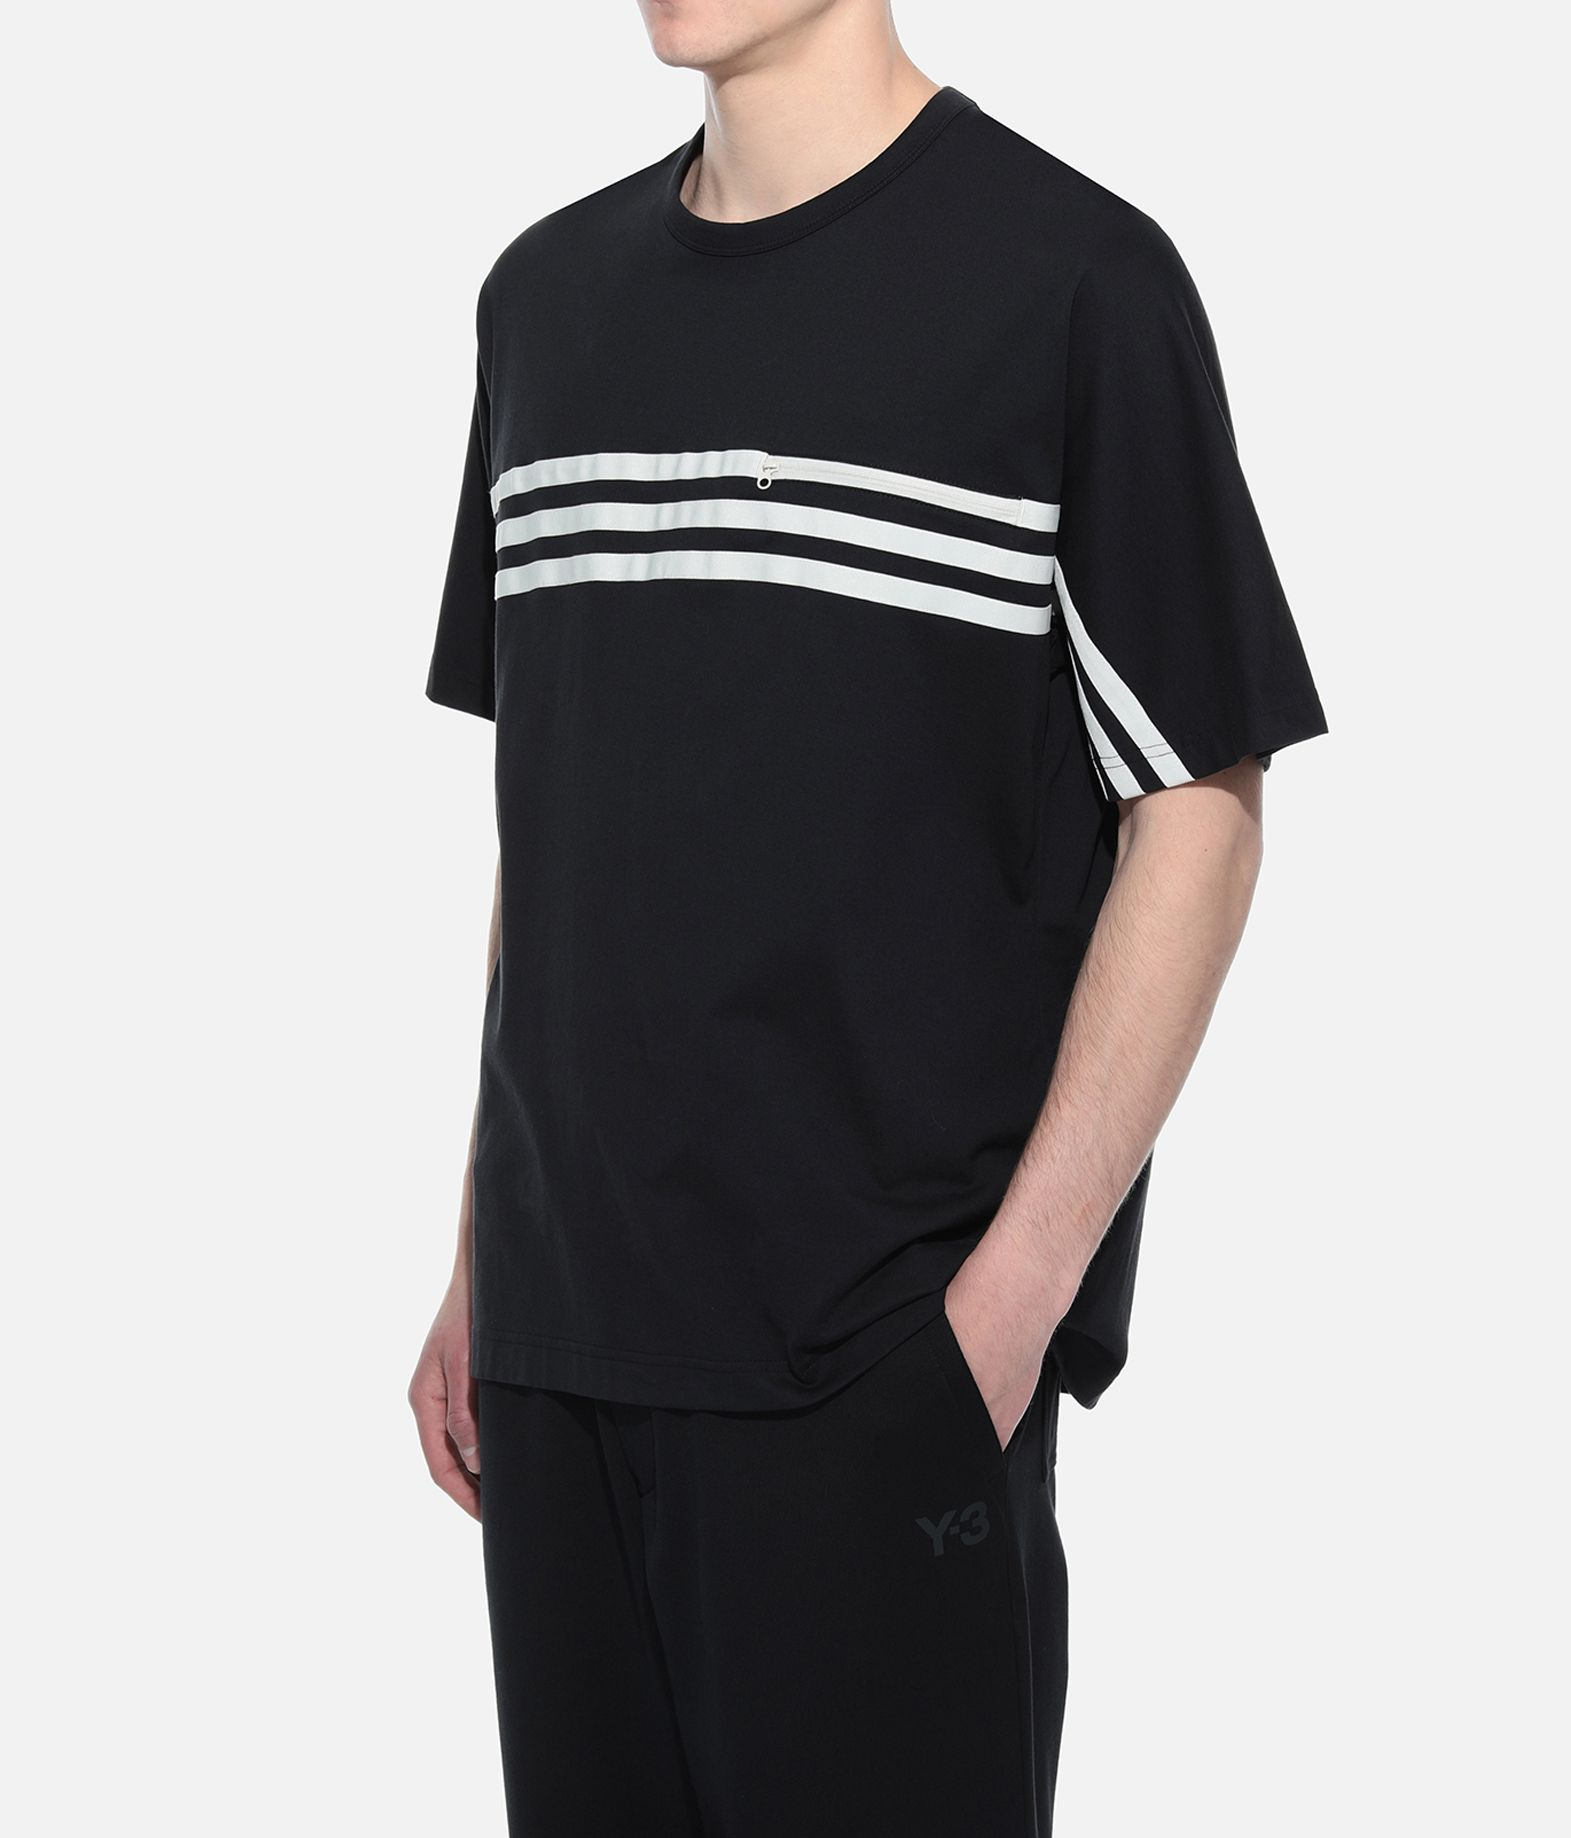 Y-3 Y-3 3-Stripes Packable Tee Short sleeve t-shirt Man e